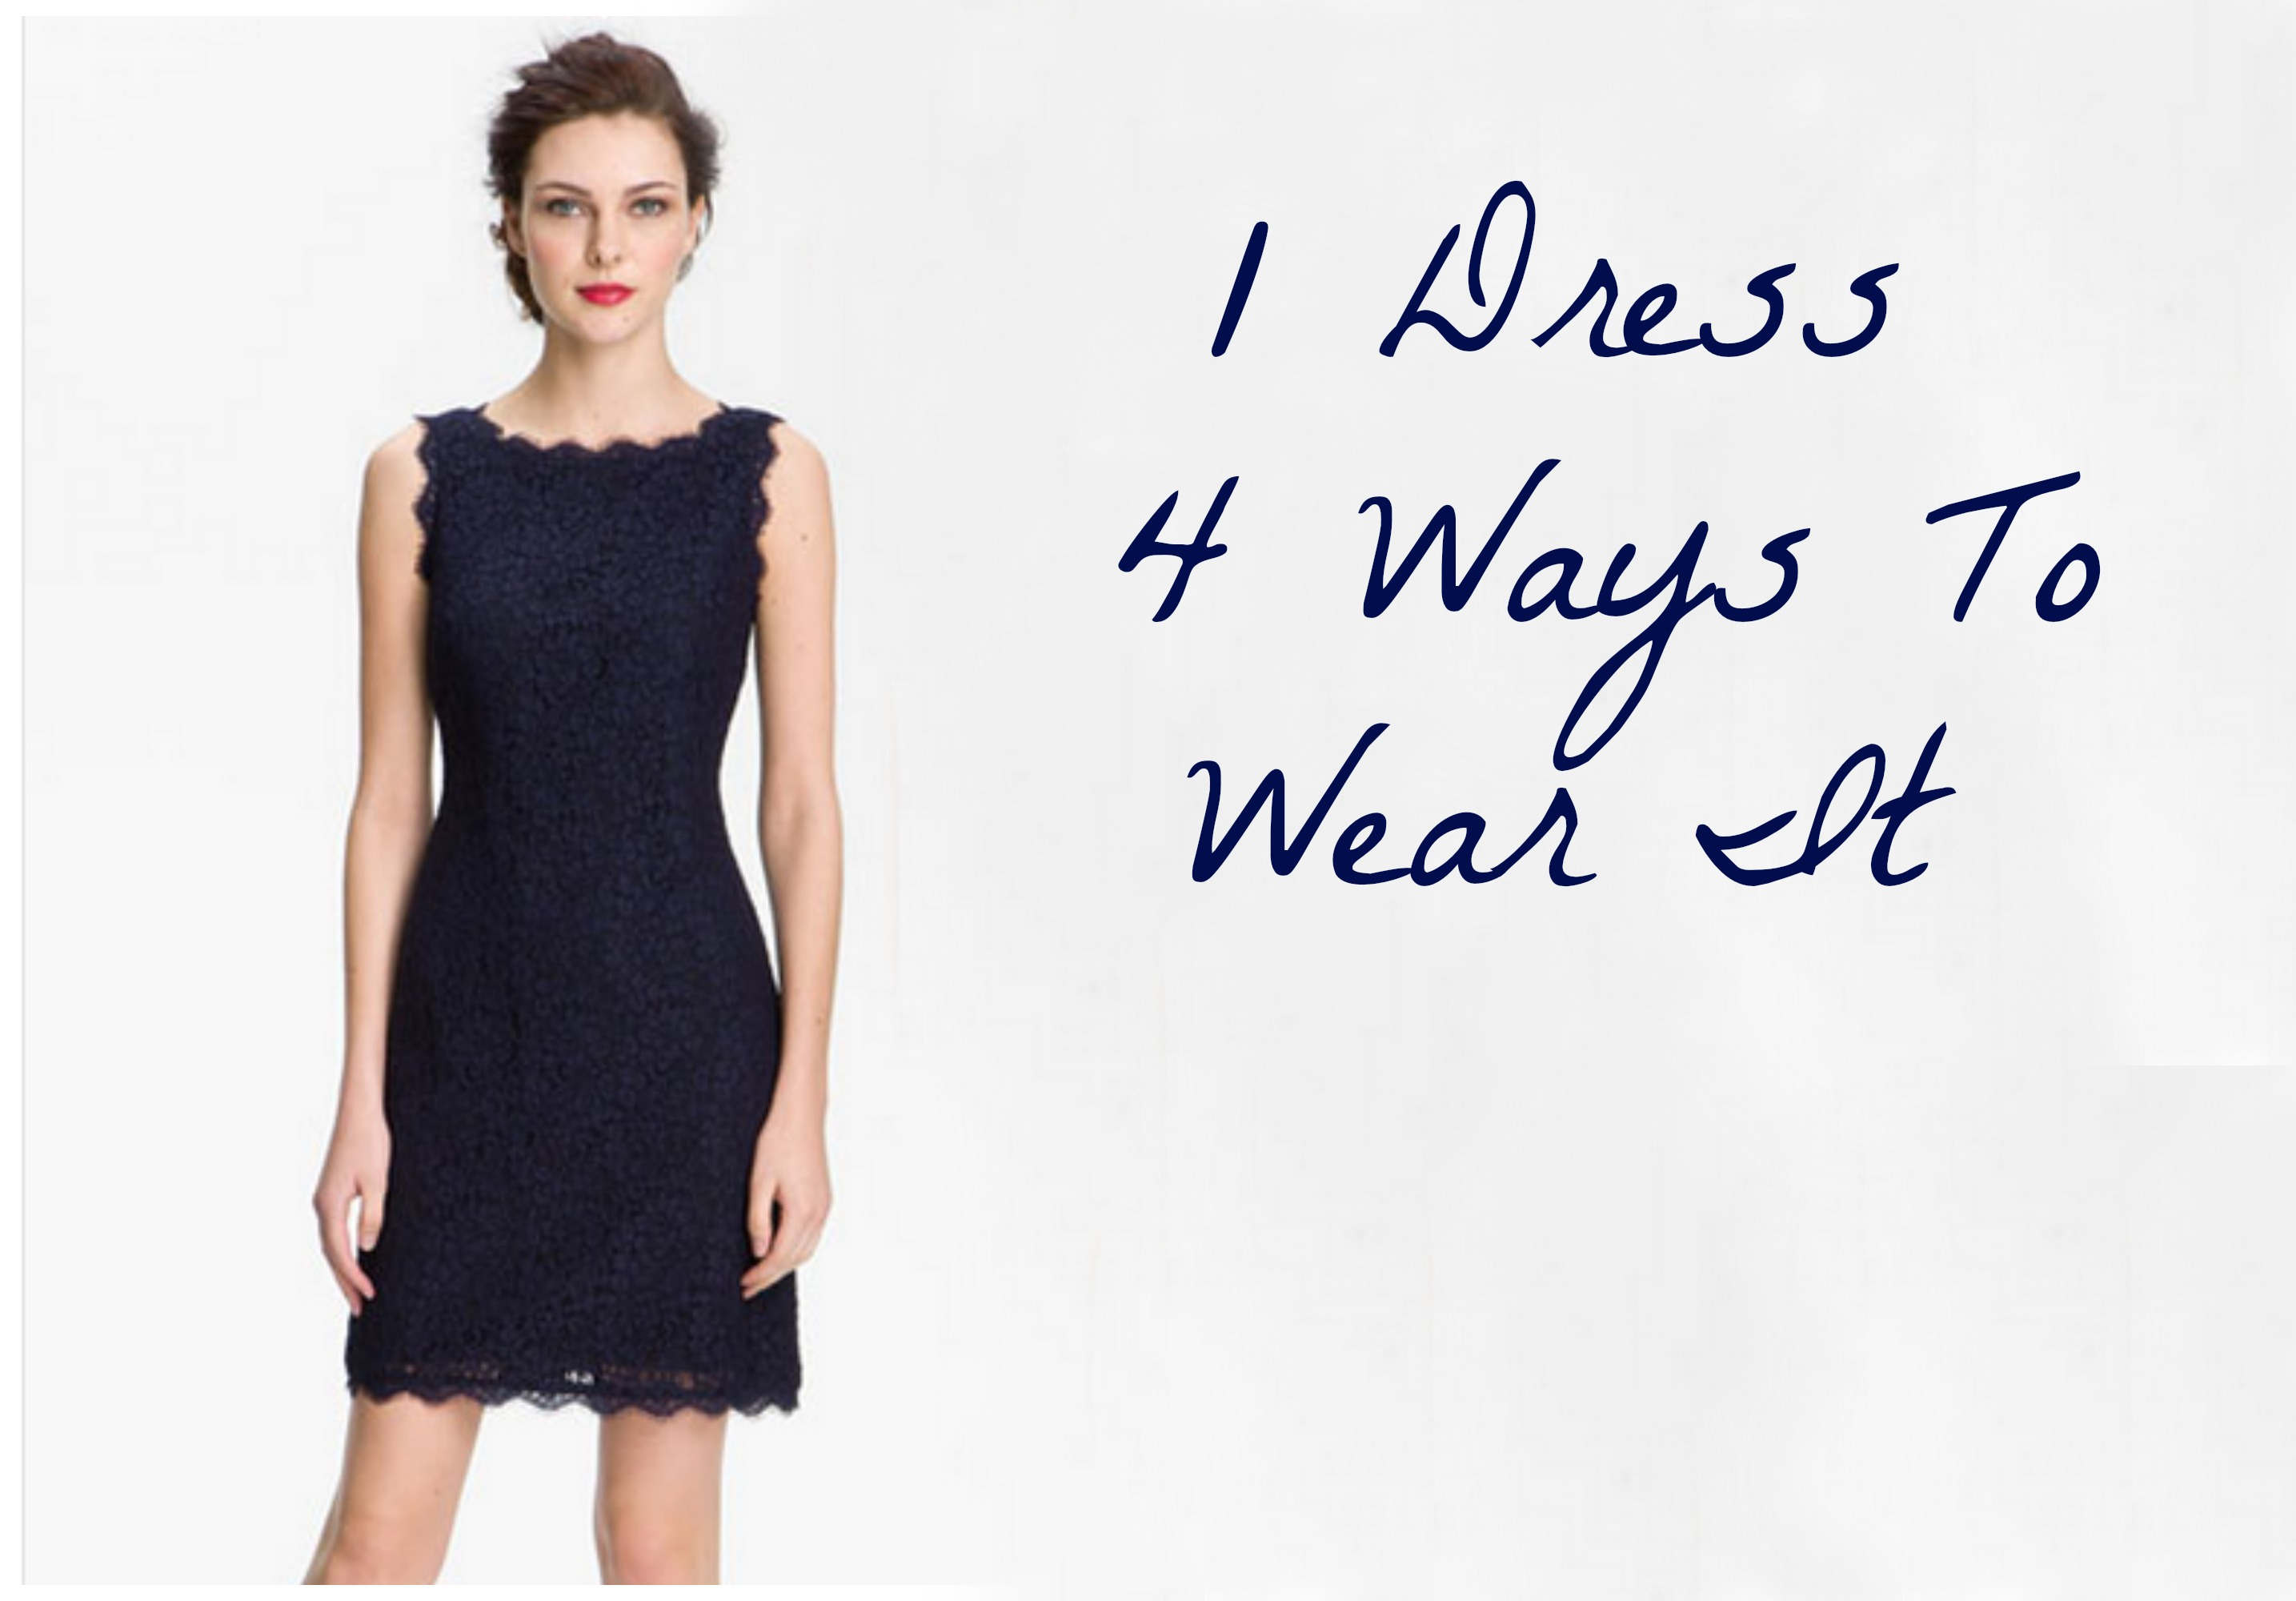 One Dress Four Ways To Wear It